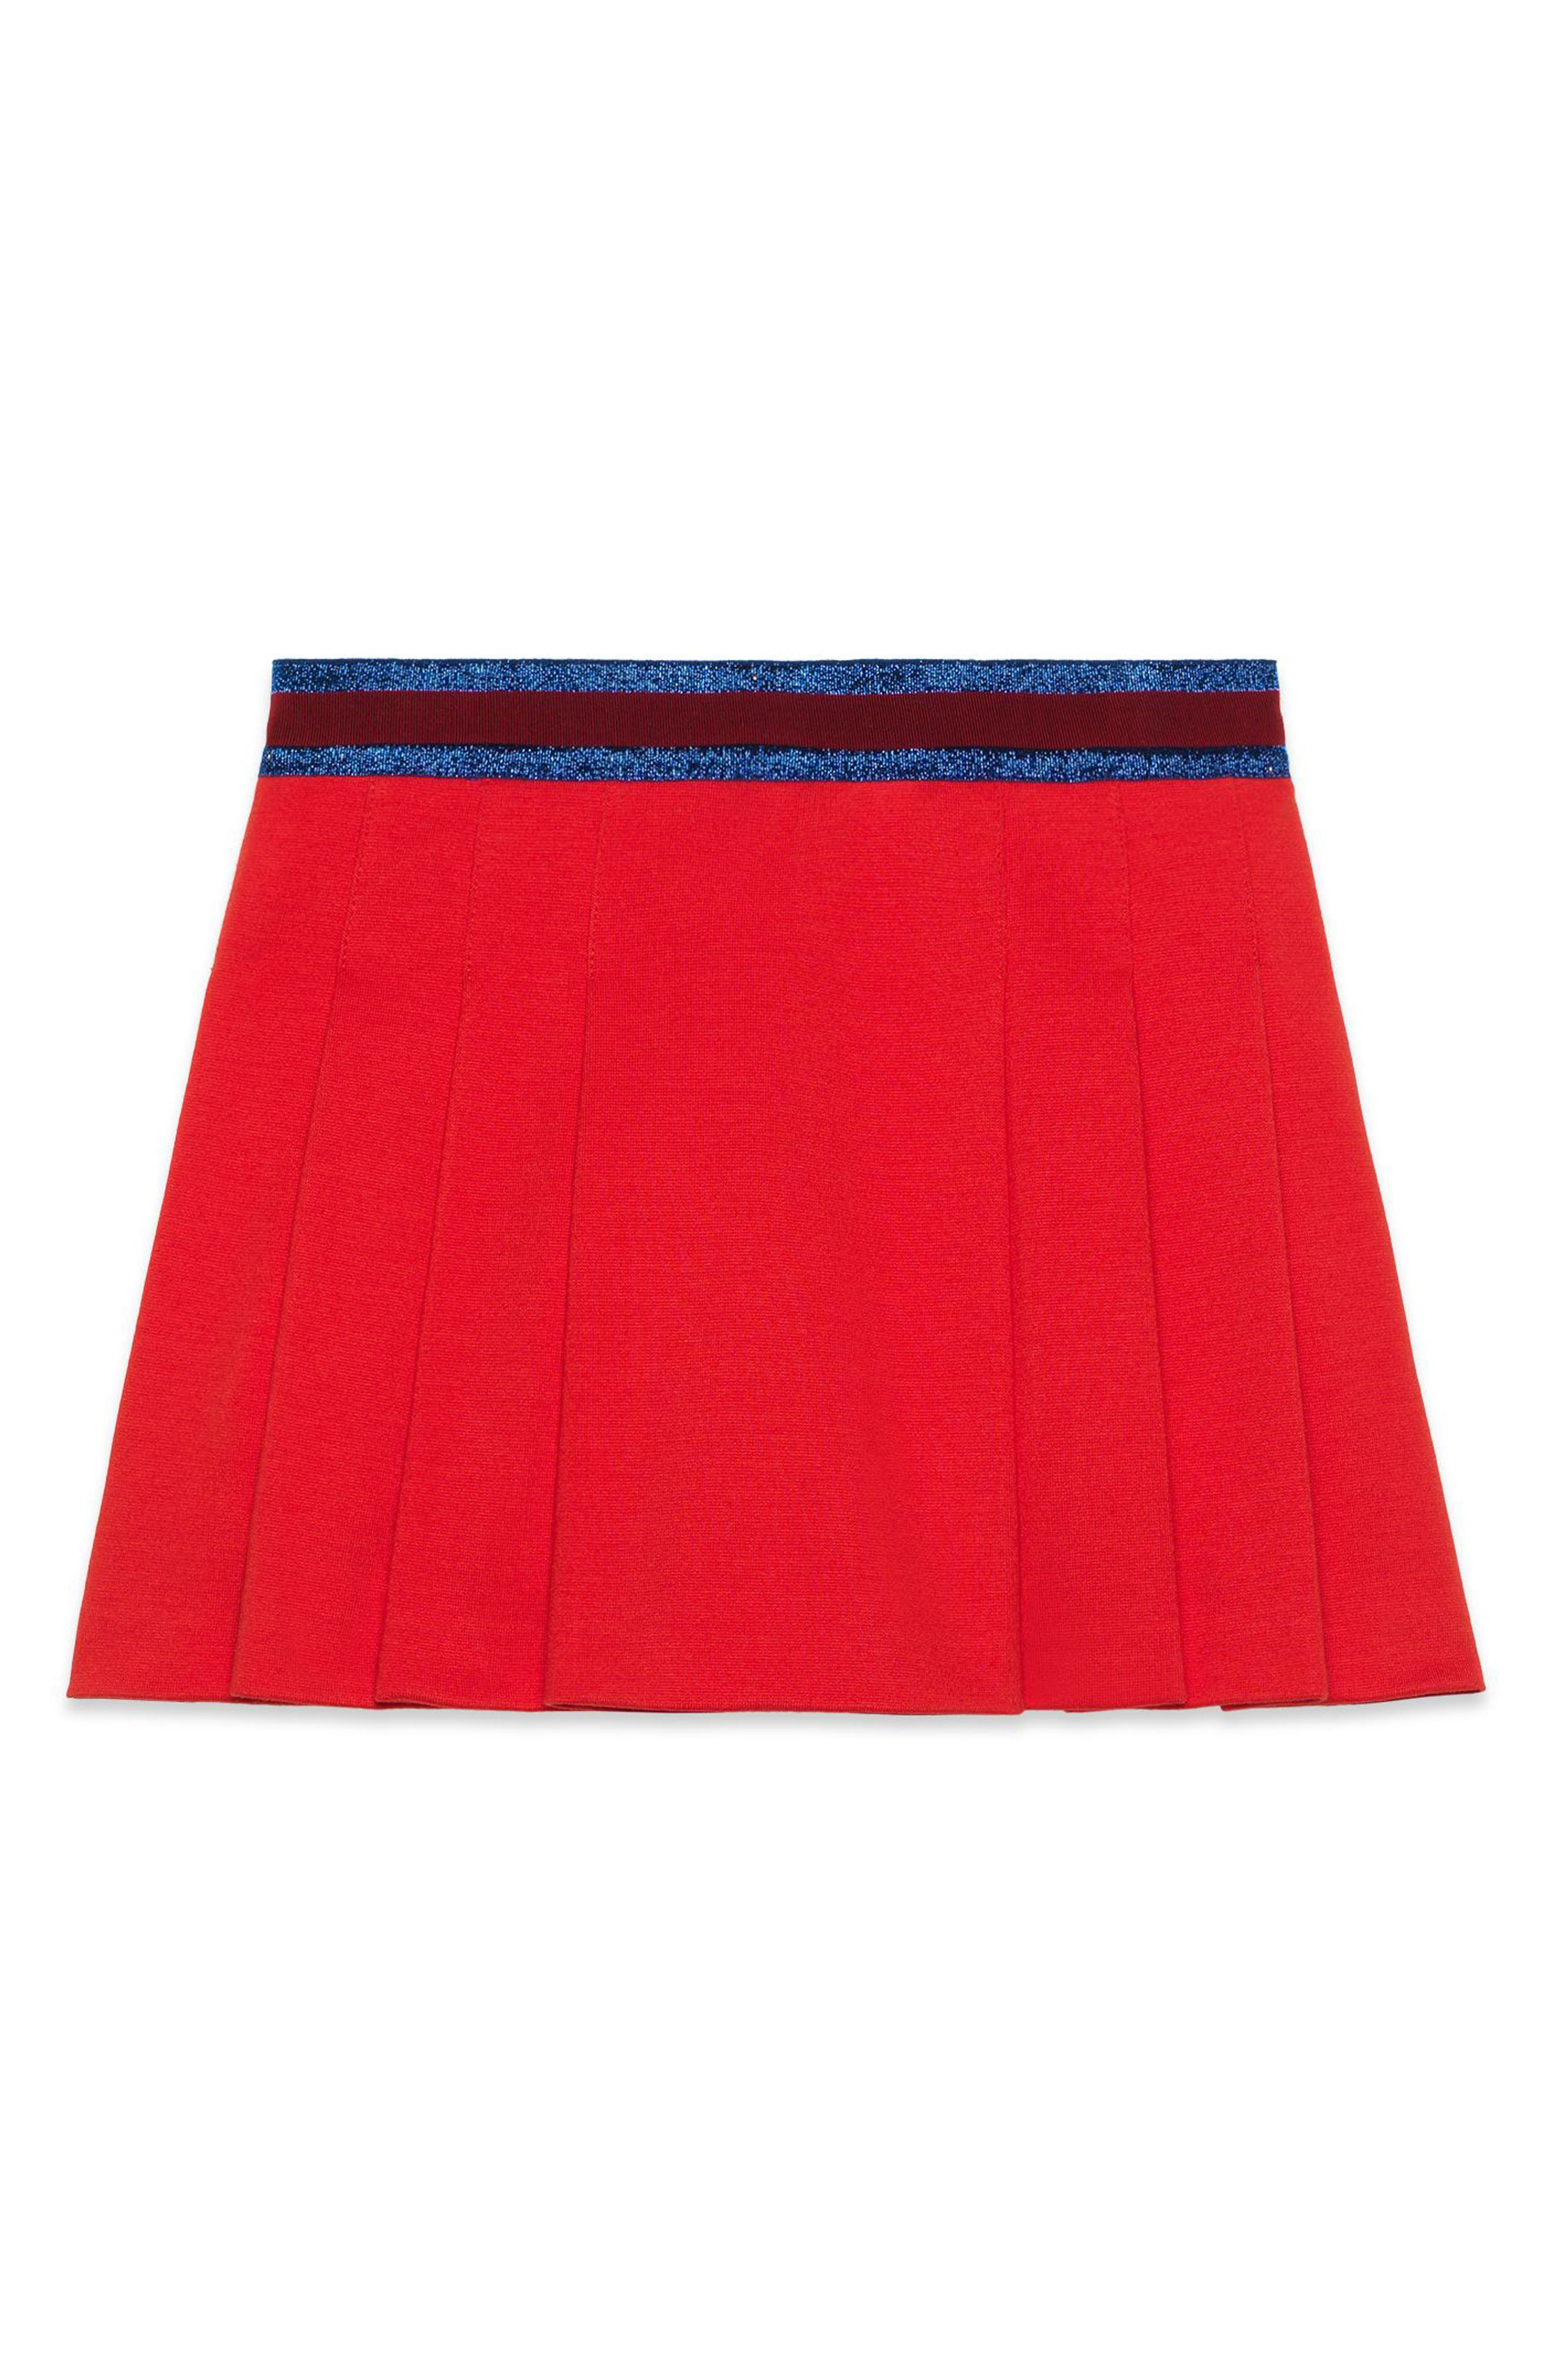 Pleated Jersey Skirt,                         Main,                         color, Red Multi